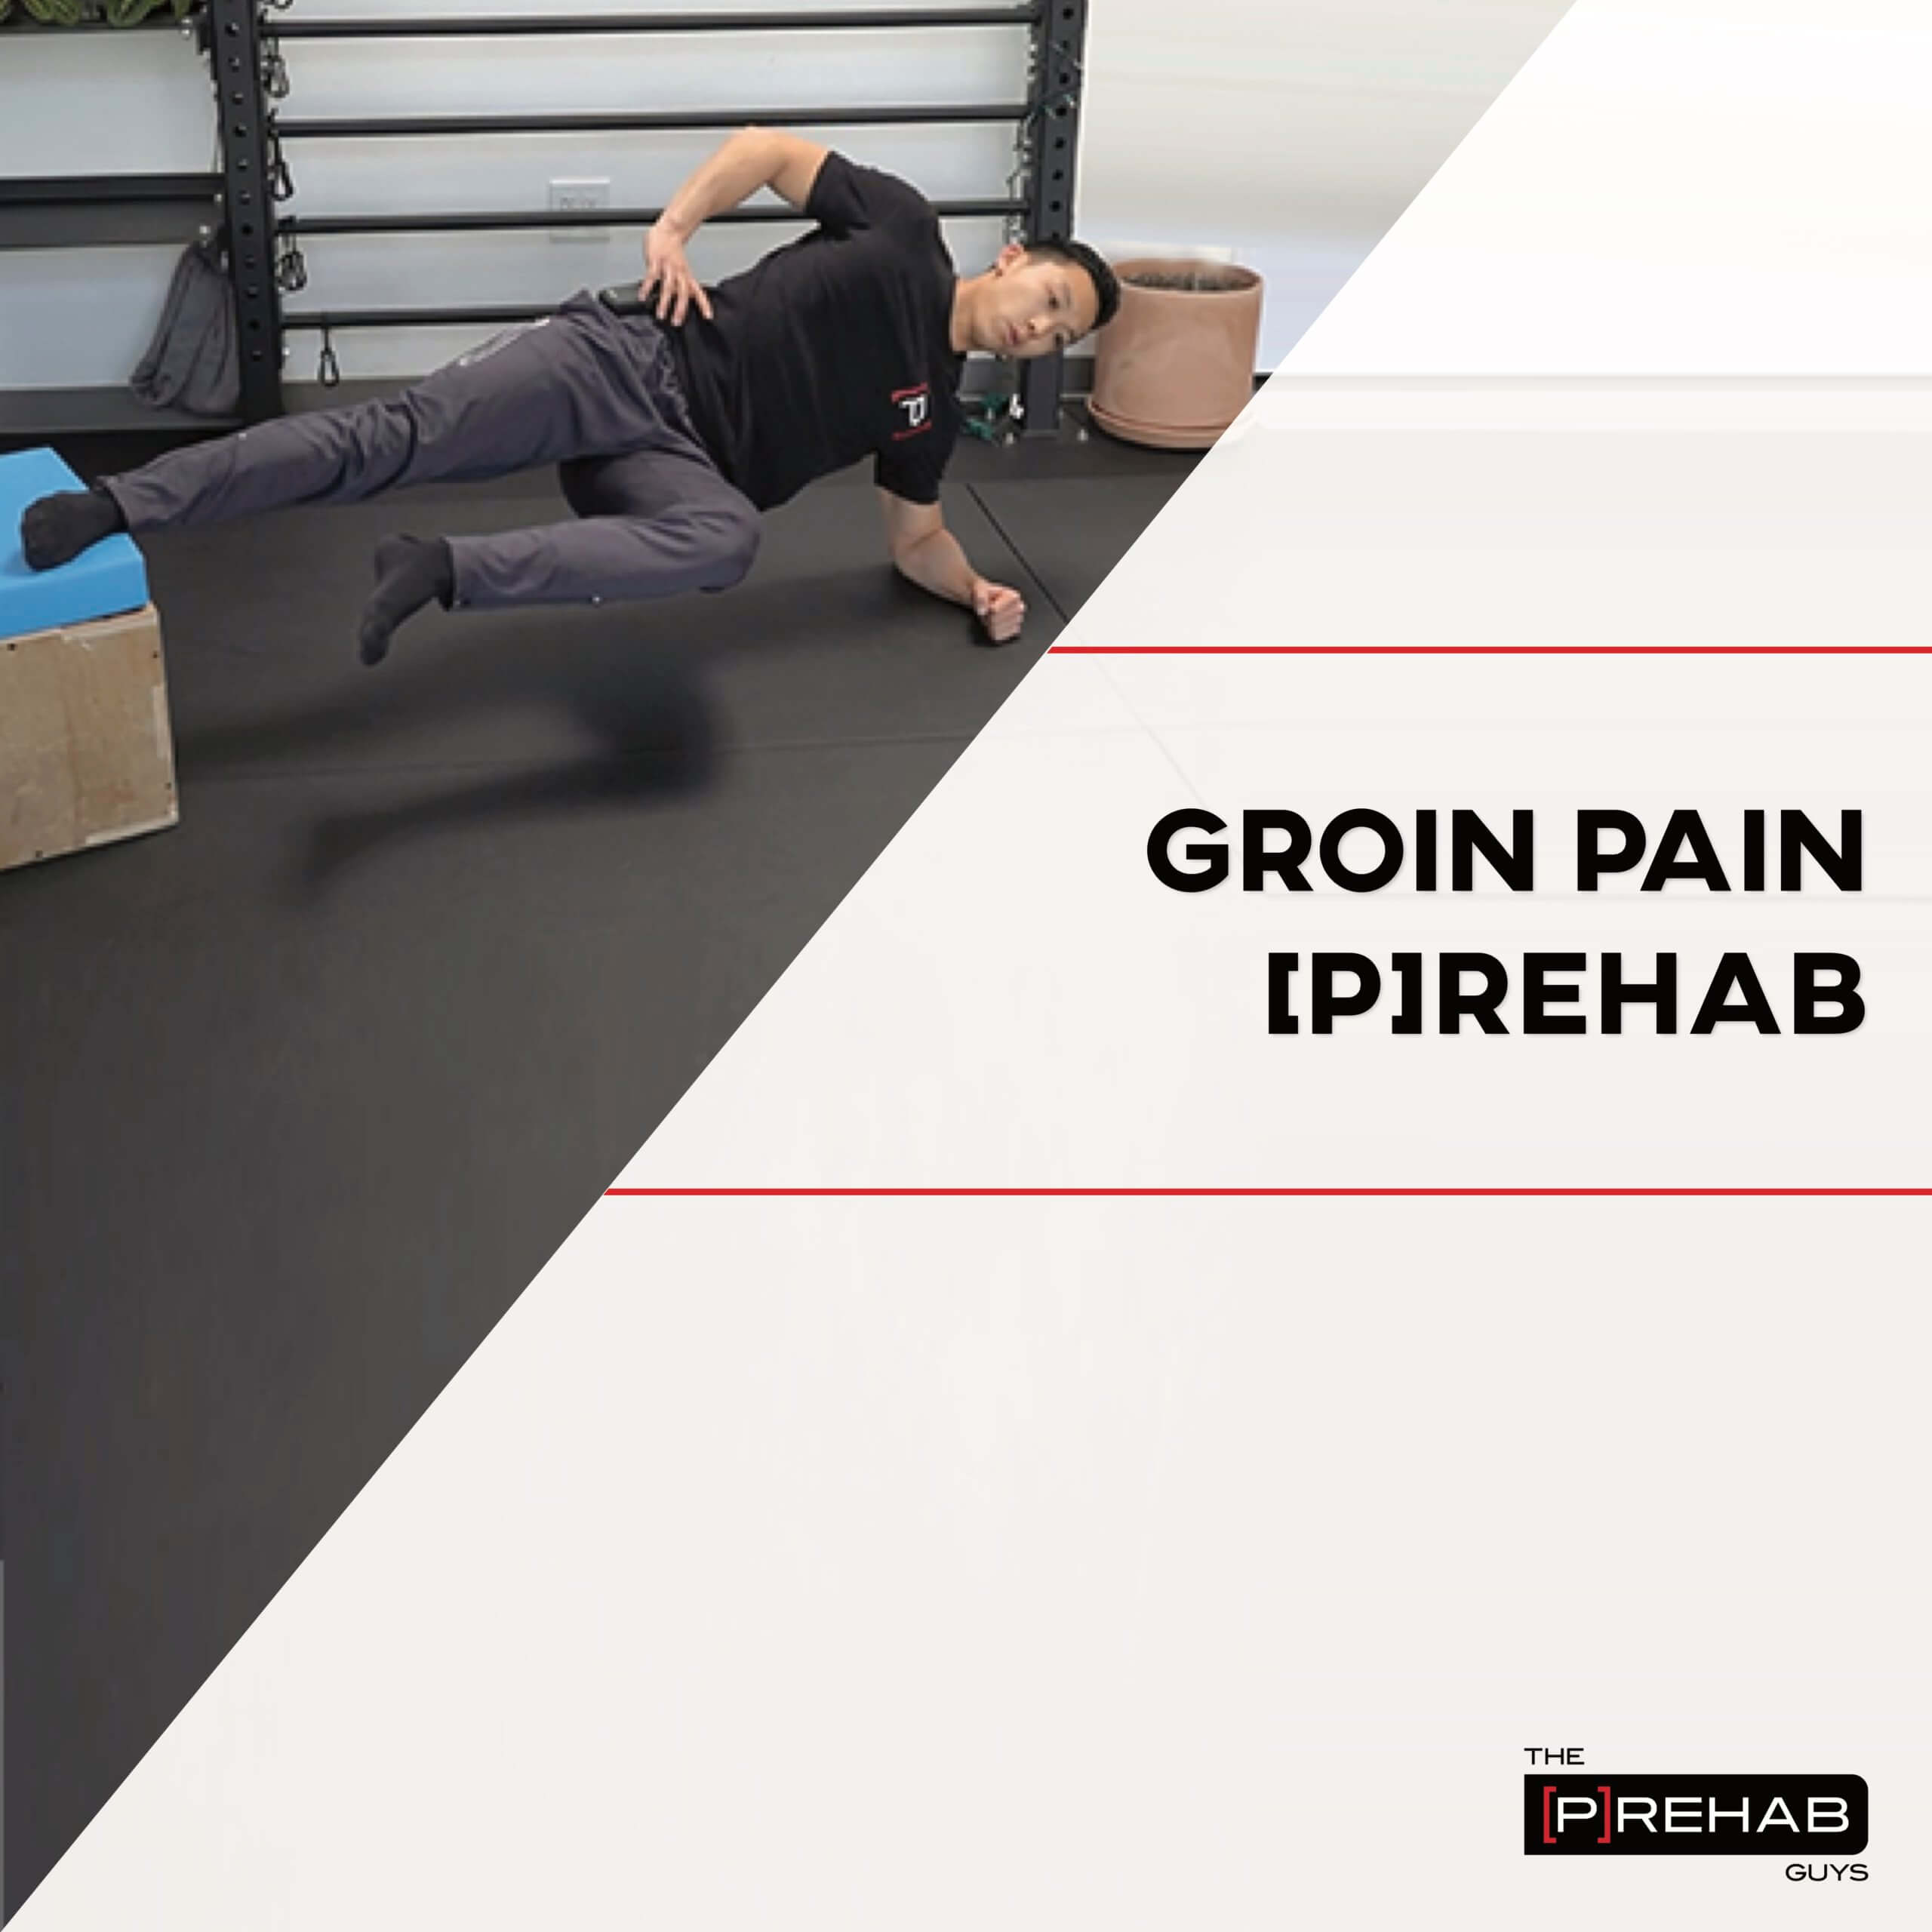 groin pain phase II workout the prehab guys